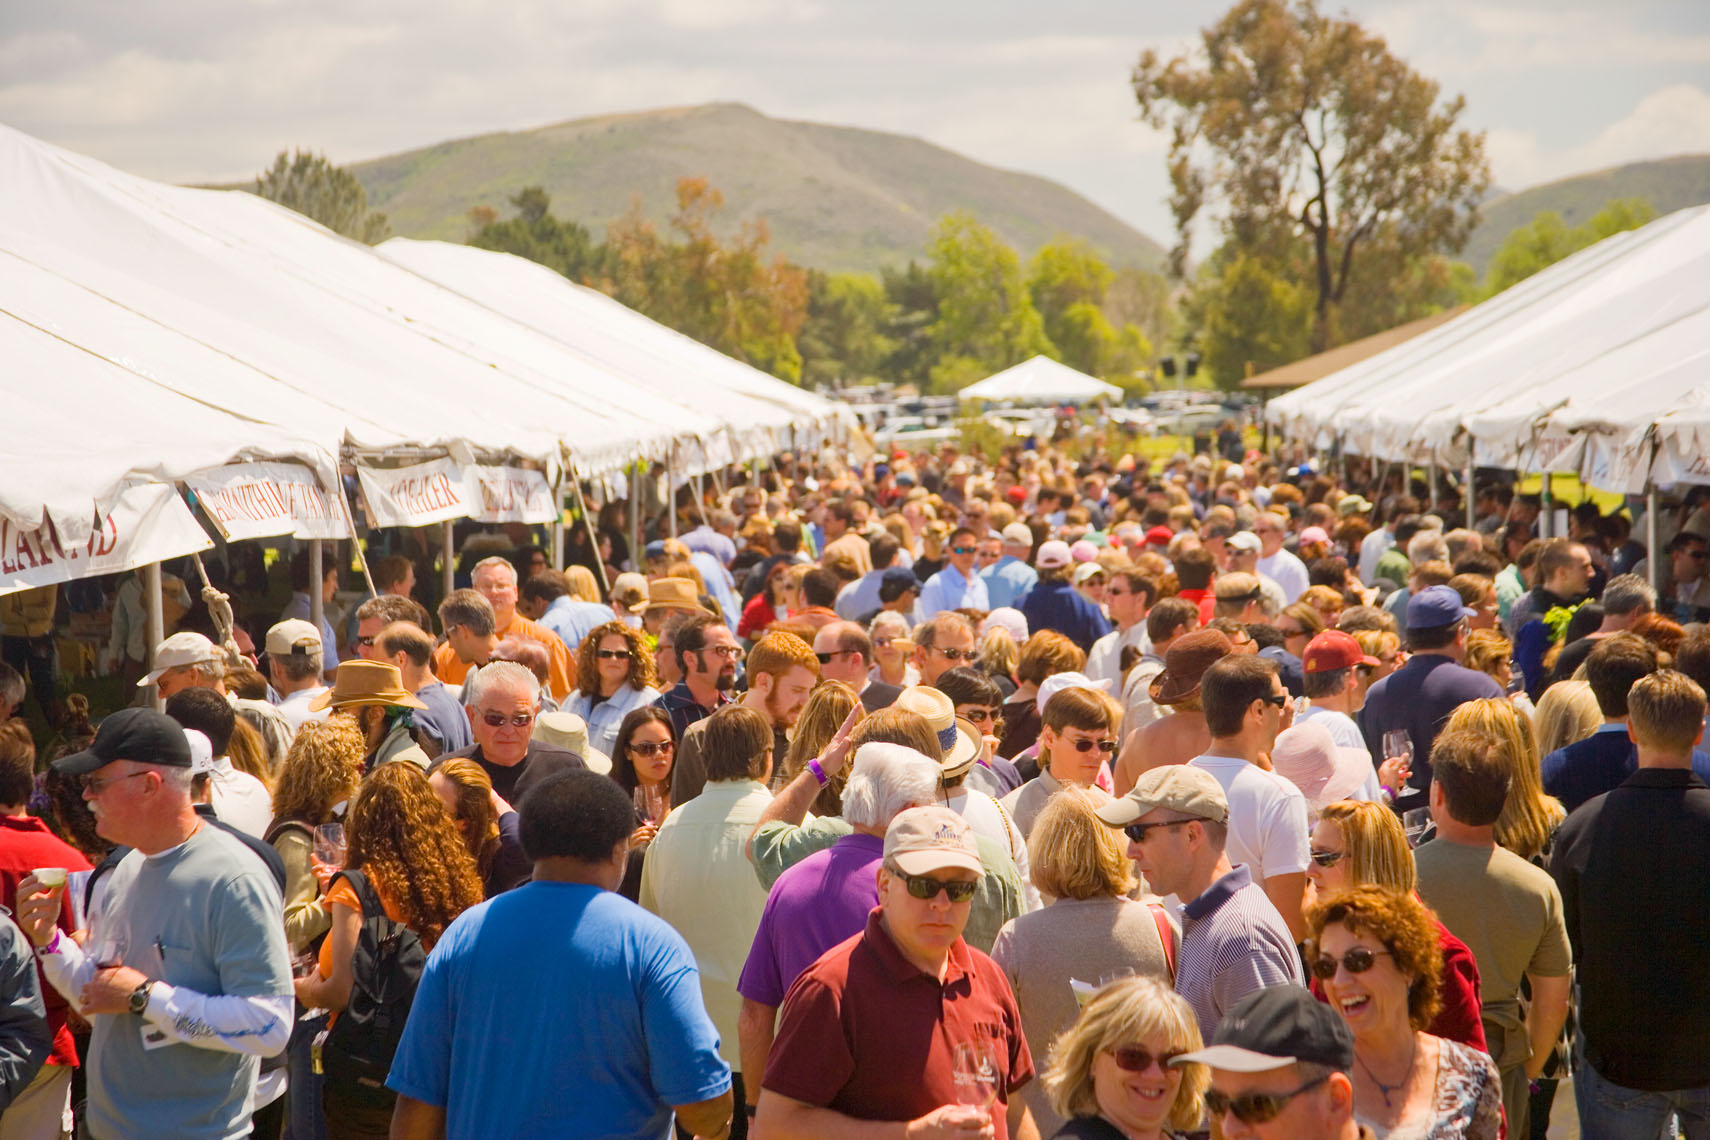 Wine_Festival_Crowd